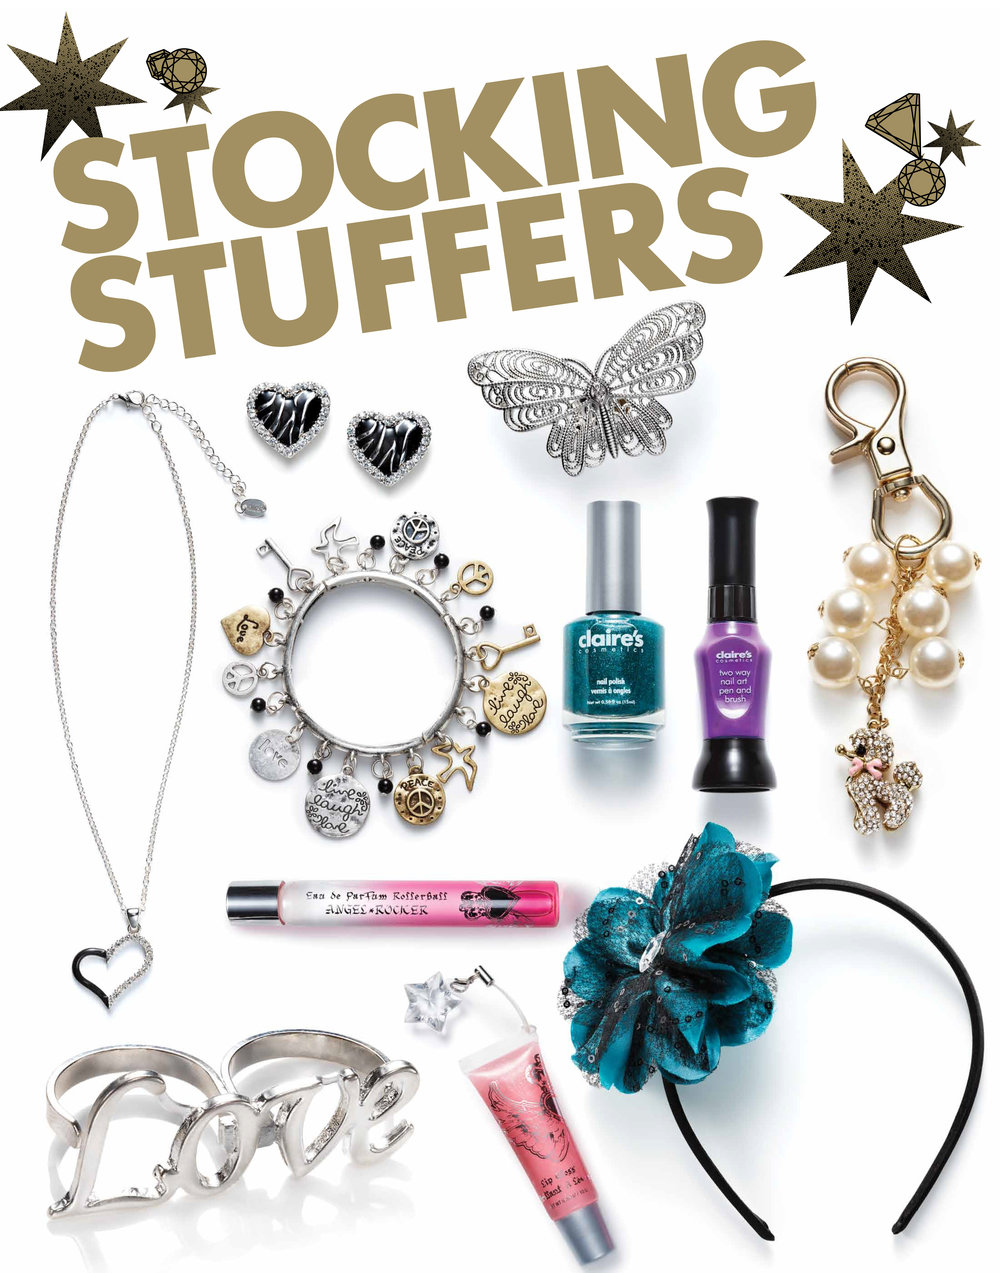 stockingstuffers-1.jpg